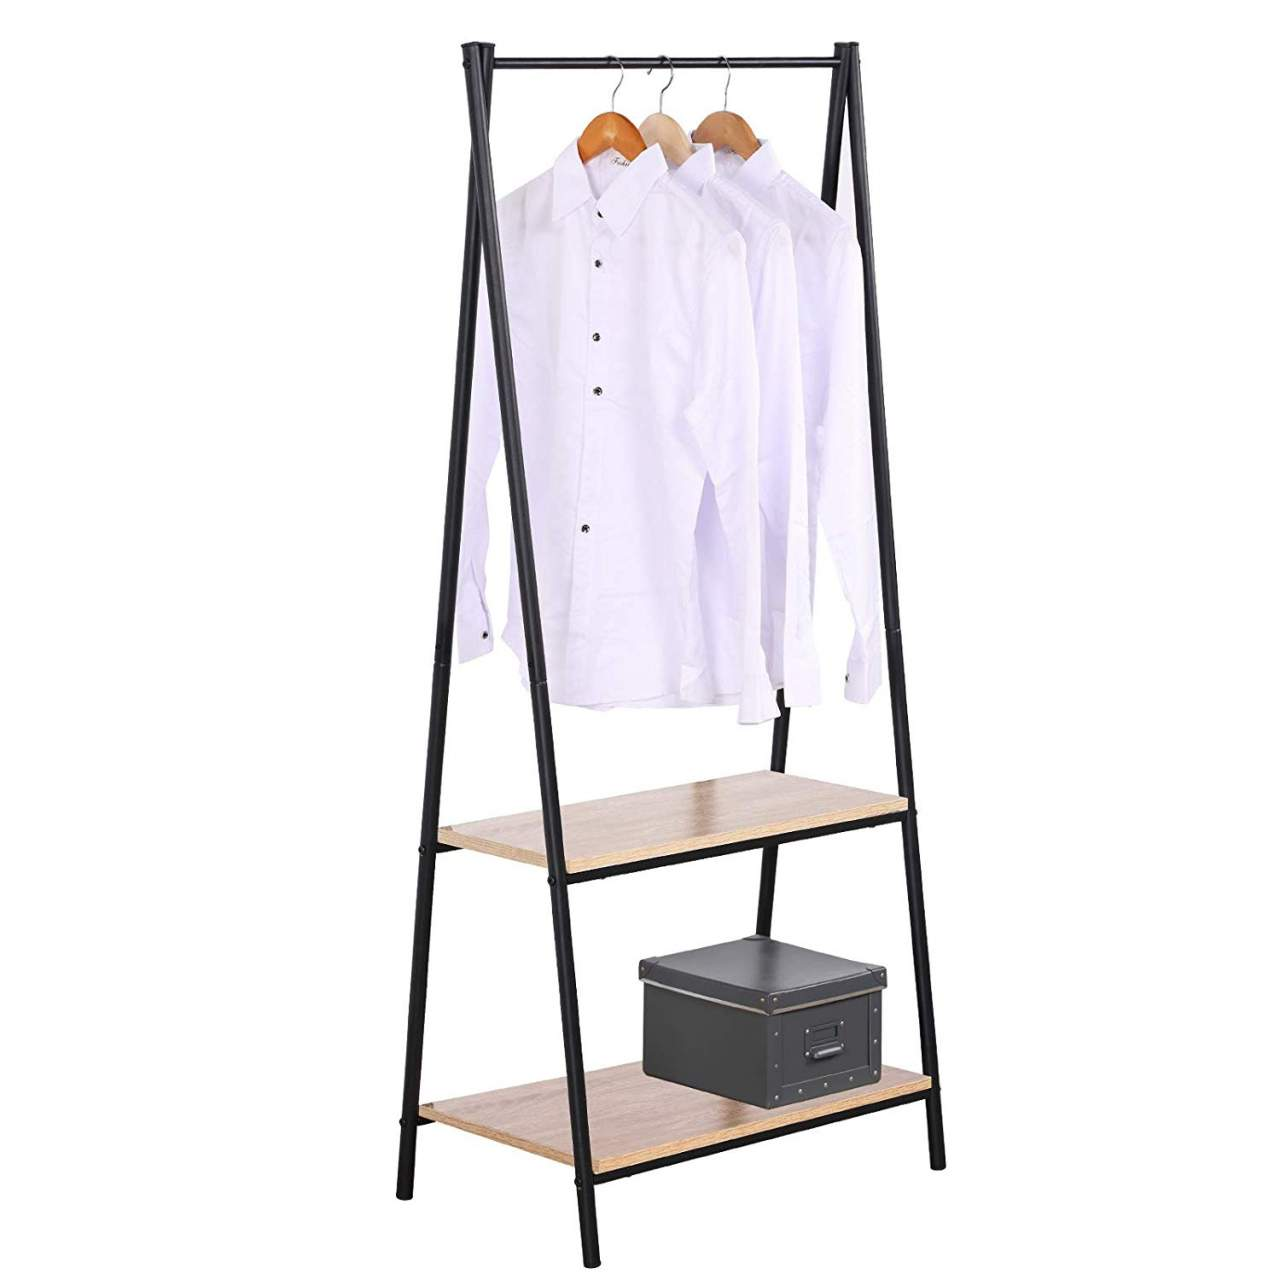 heavy duty clothes rail metal with 2 tiers wooden shoe rack storage shelves